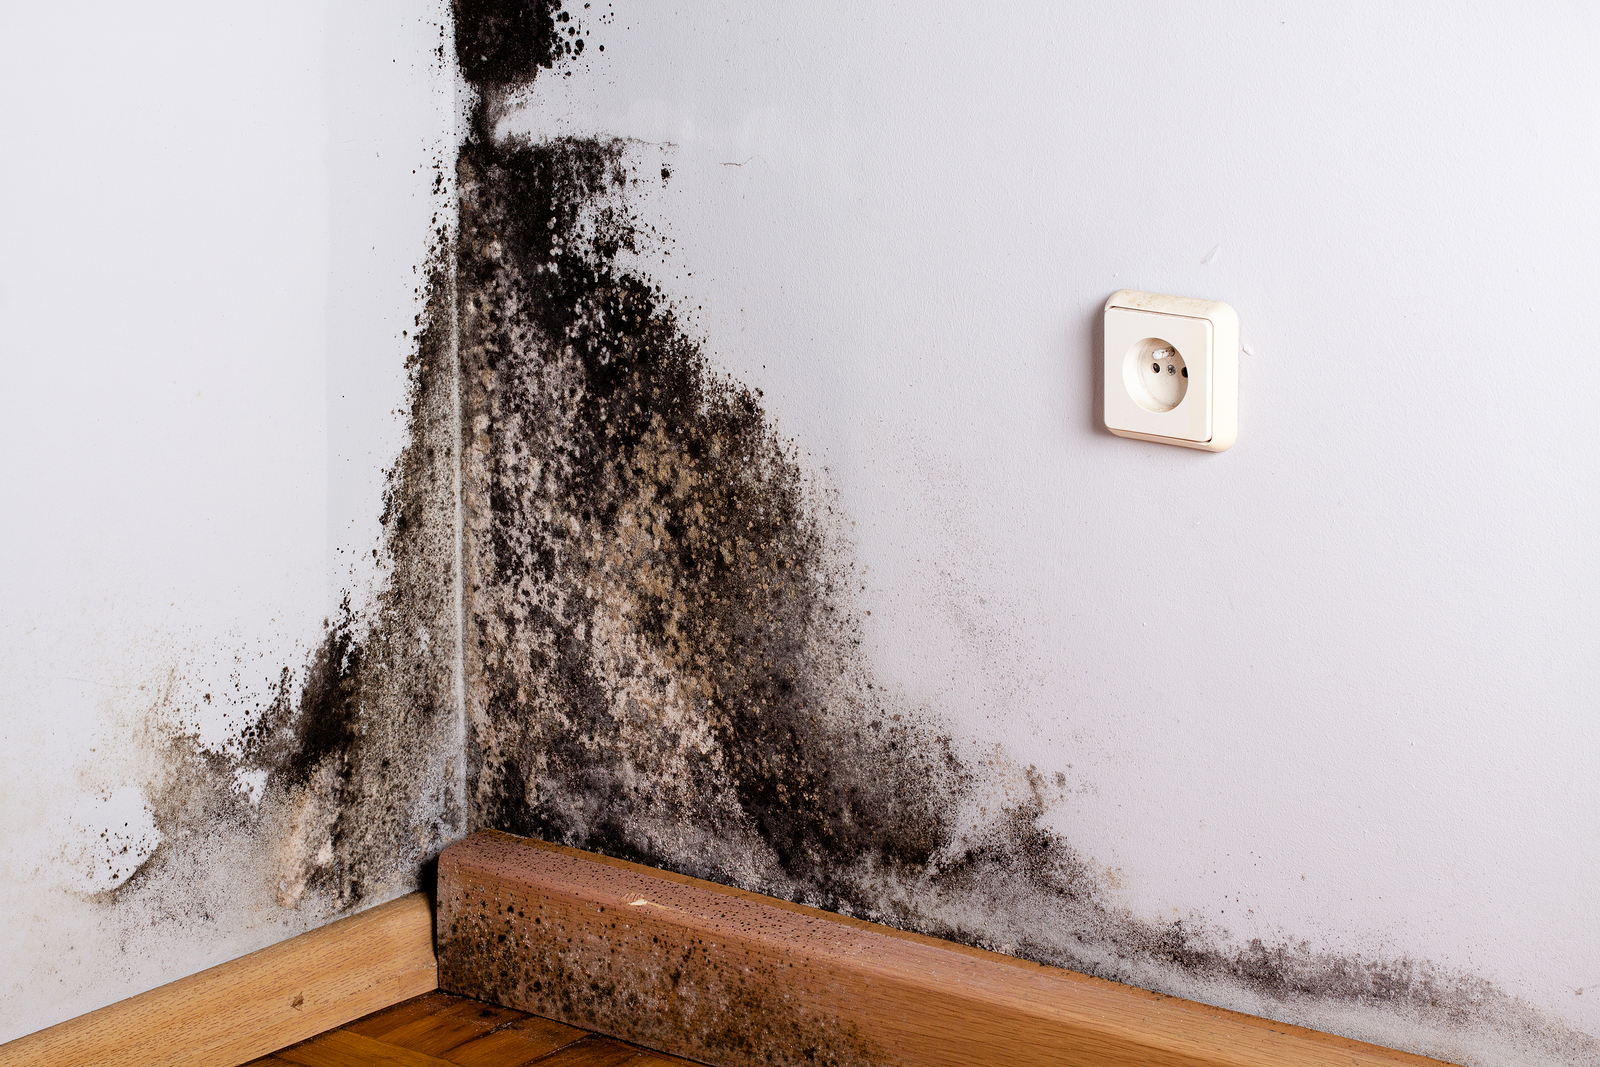 Black Mold Symptoms You Need To Watch Out For & 12 Natural Remedies